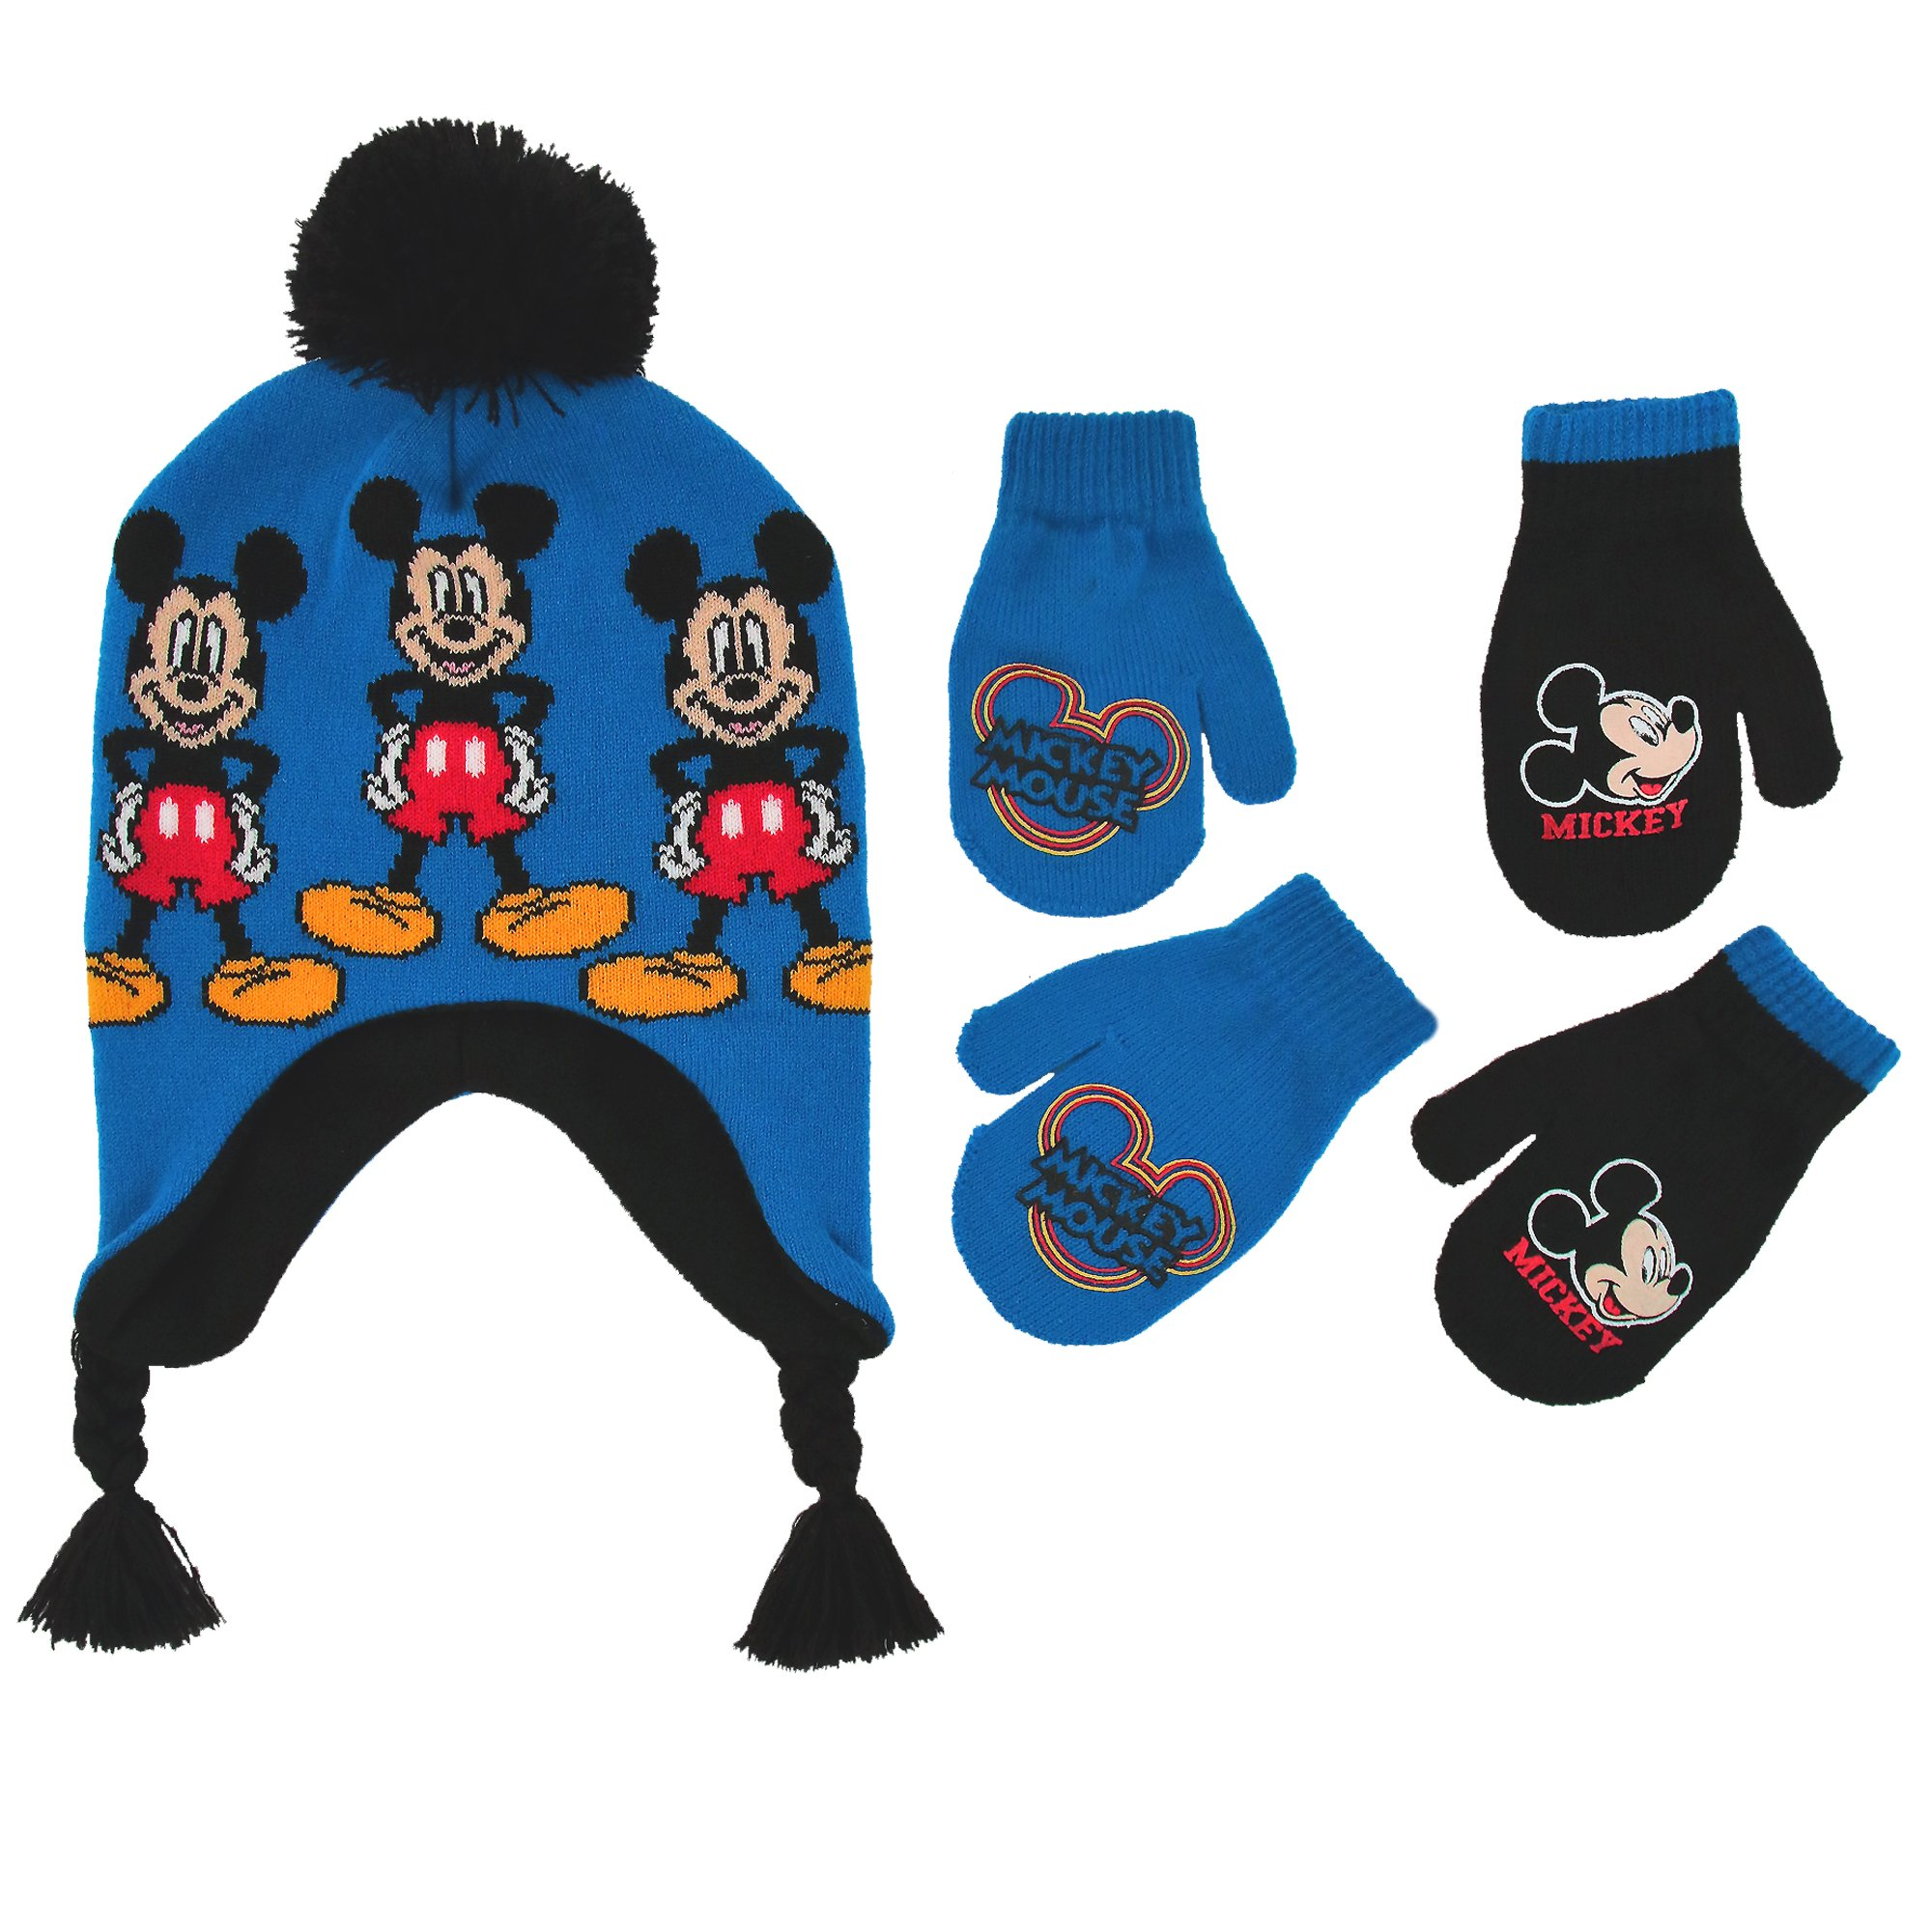 bcc7b21a5fb Get Quotations · Disney Little Boys Mickey Mouse Hat and 2 Pair Gloves or  Mittens Cold Weather Accessory Set